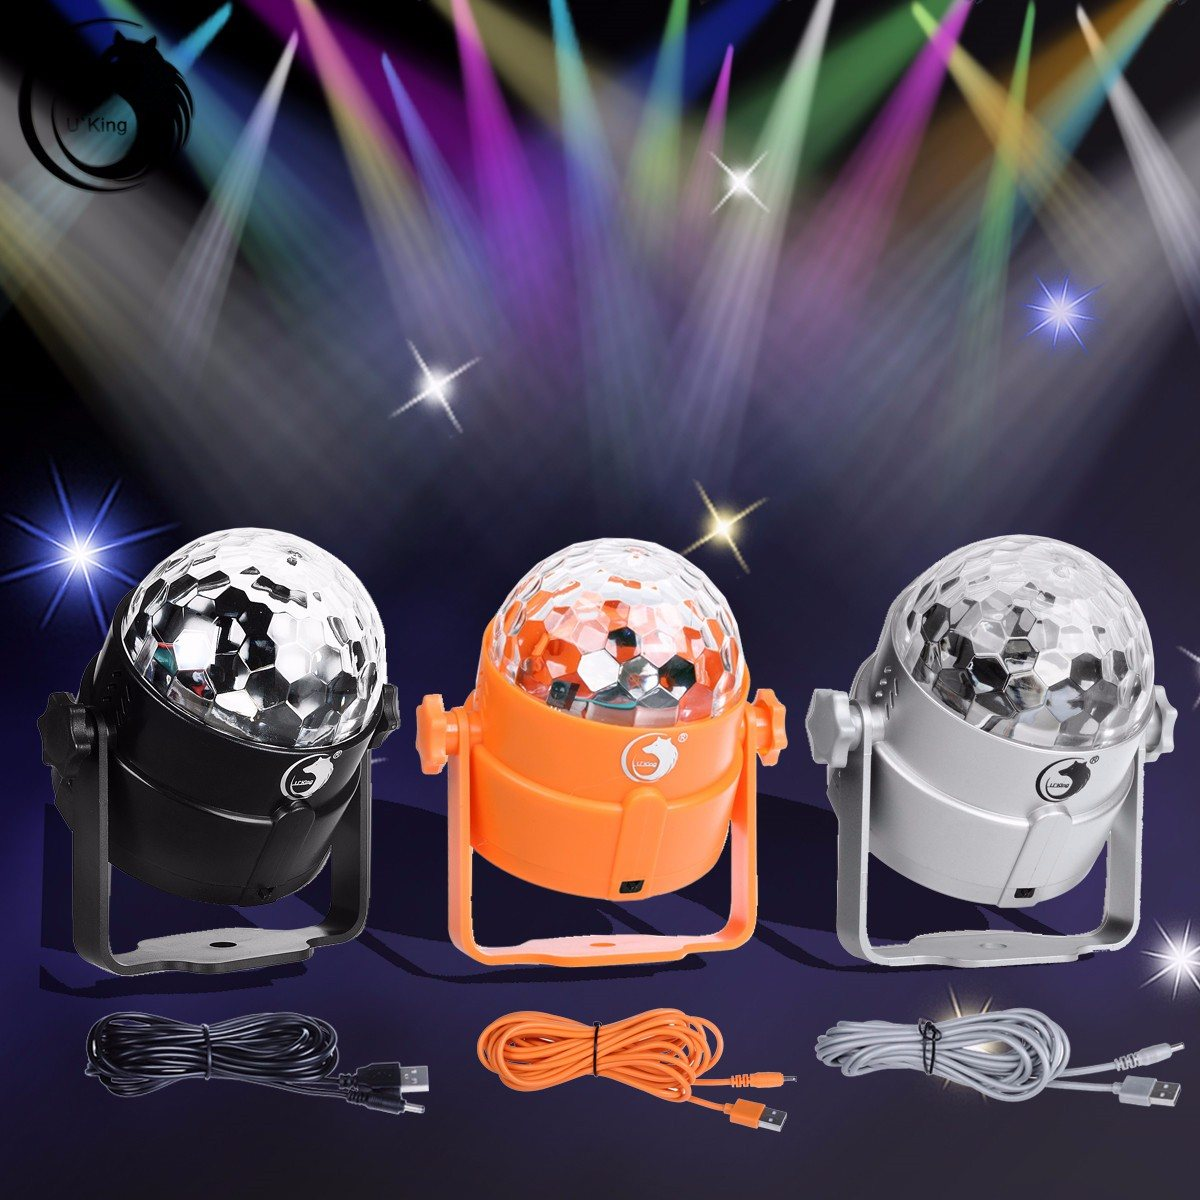 Automatic LED Magic Stage Light Crystal Ball Sound Control Night Lamp Hanging DJ Club Pub Bar Disco Wedding Party Show Lighting mini rgb led party disco club dj light crystal magic ball effect stage lighting